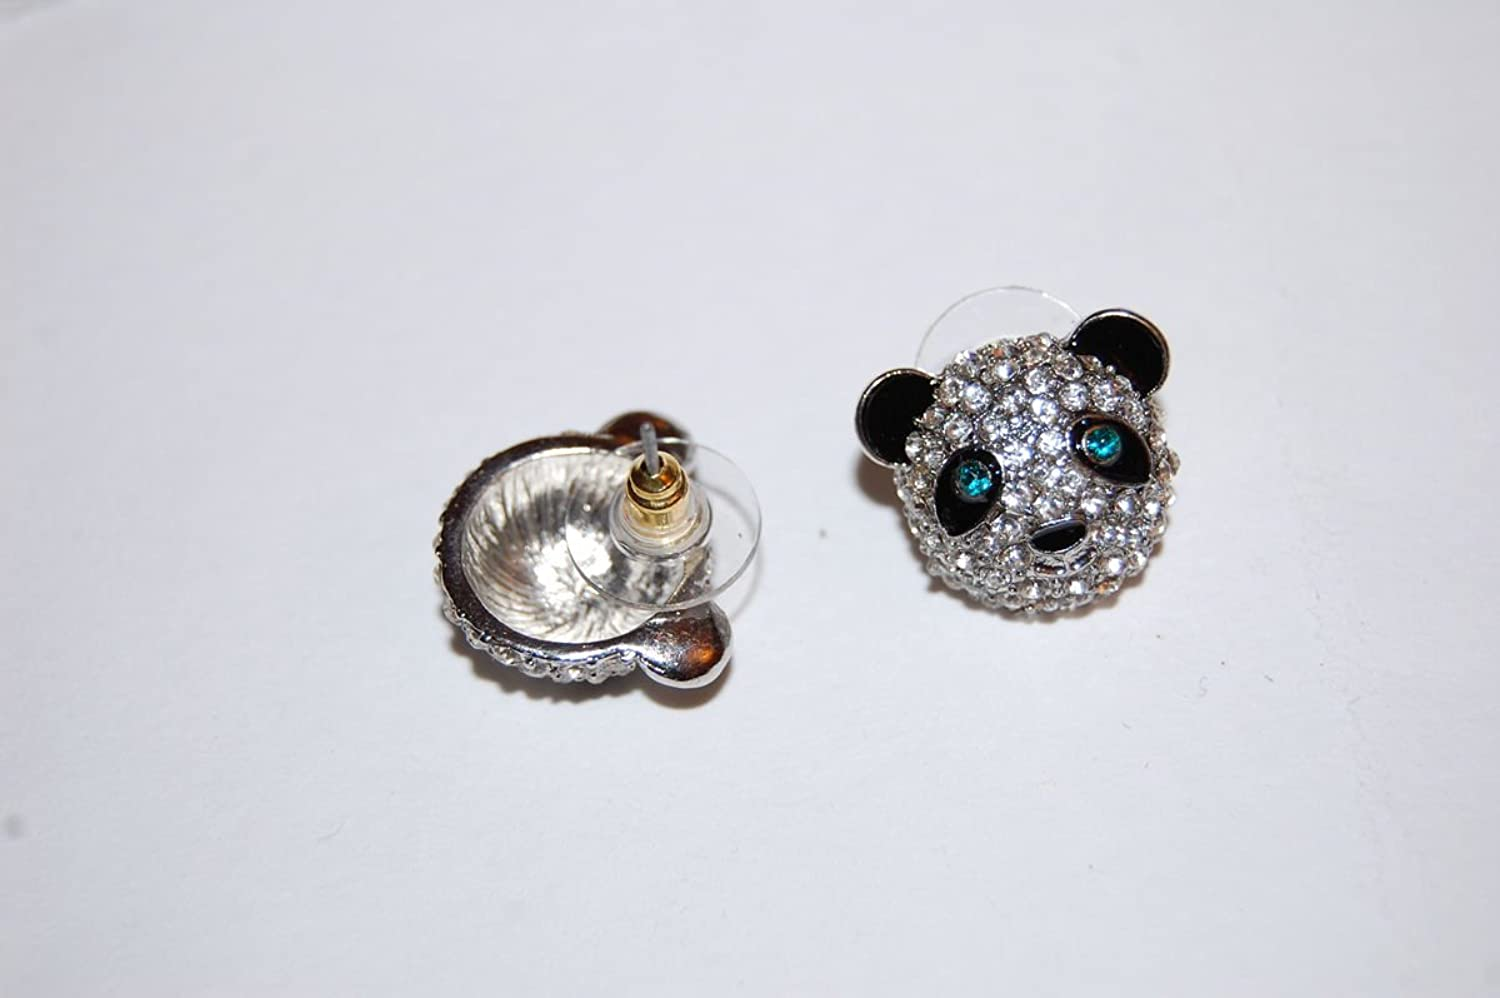 Panda Stud Earrings Encrusted with Shiny Crystals with Sterling Silver Posts (Supplied in a Gift Pouch) 8ZQjy8